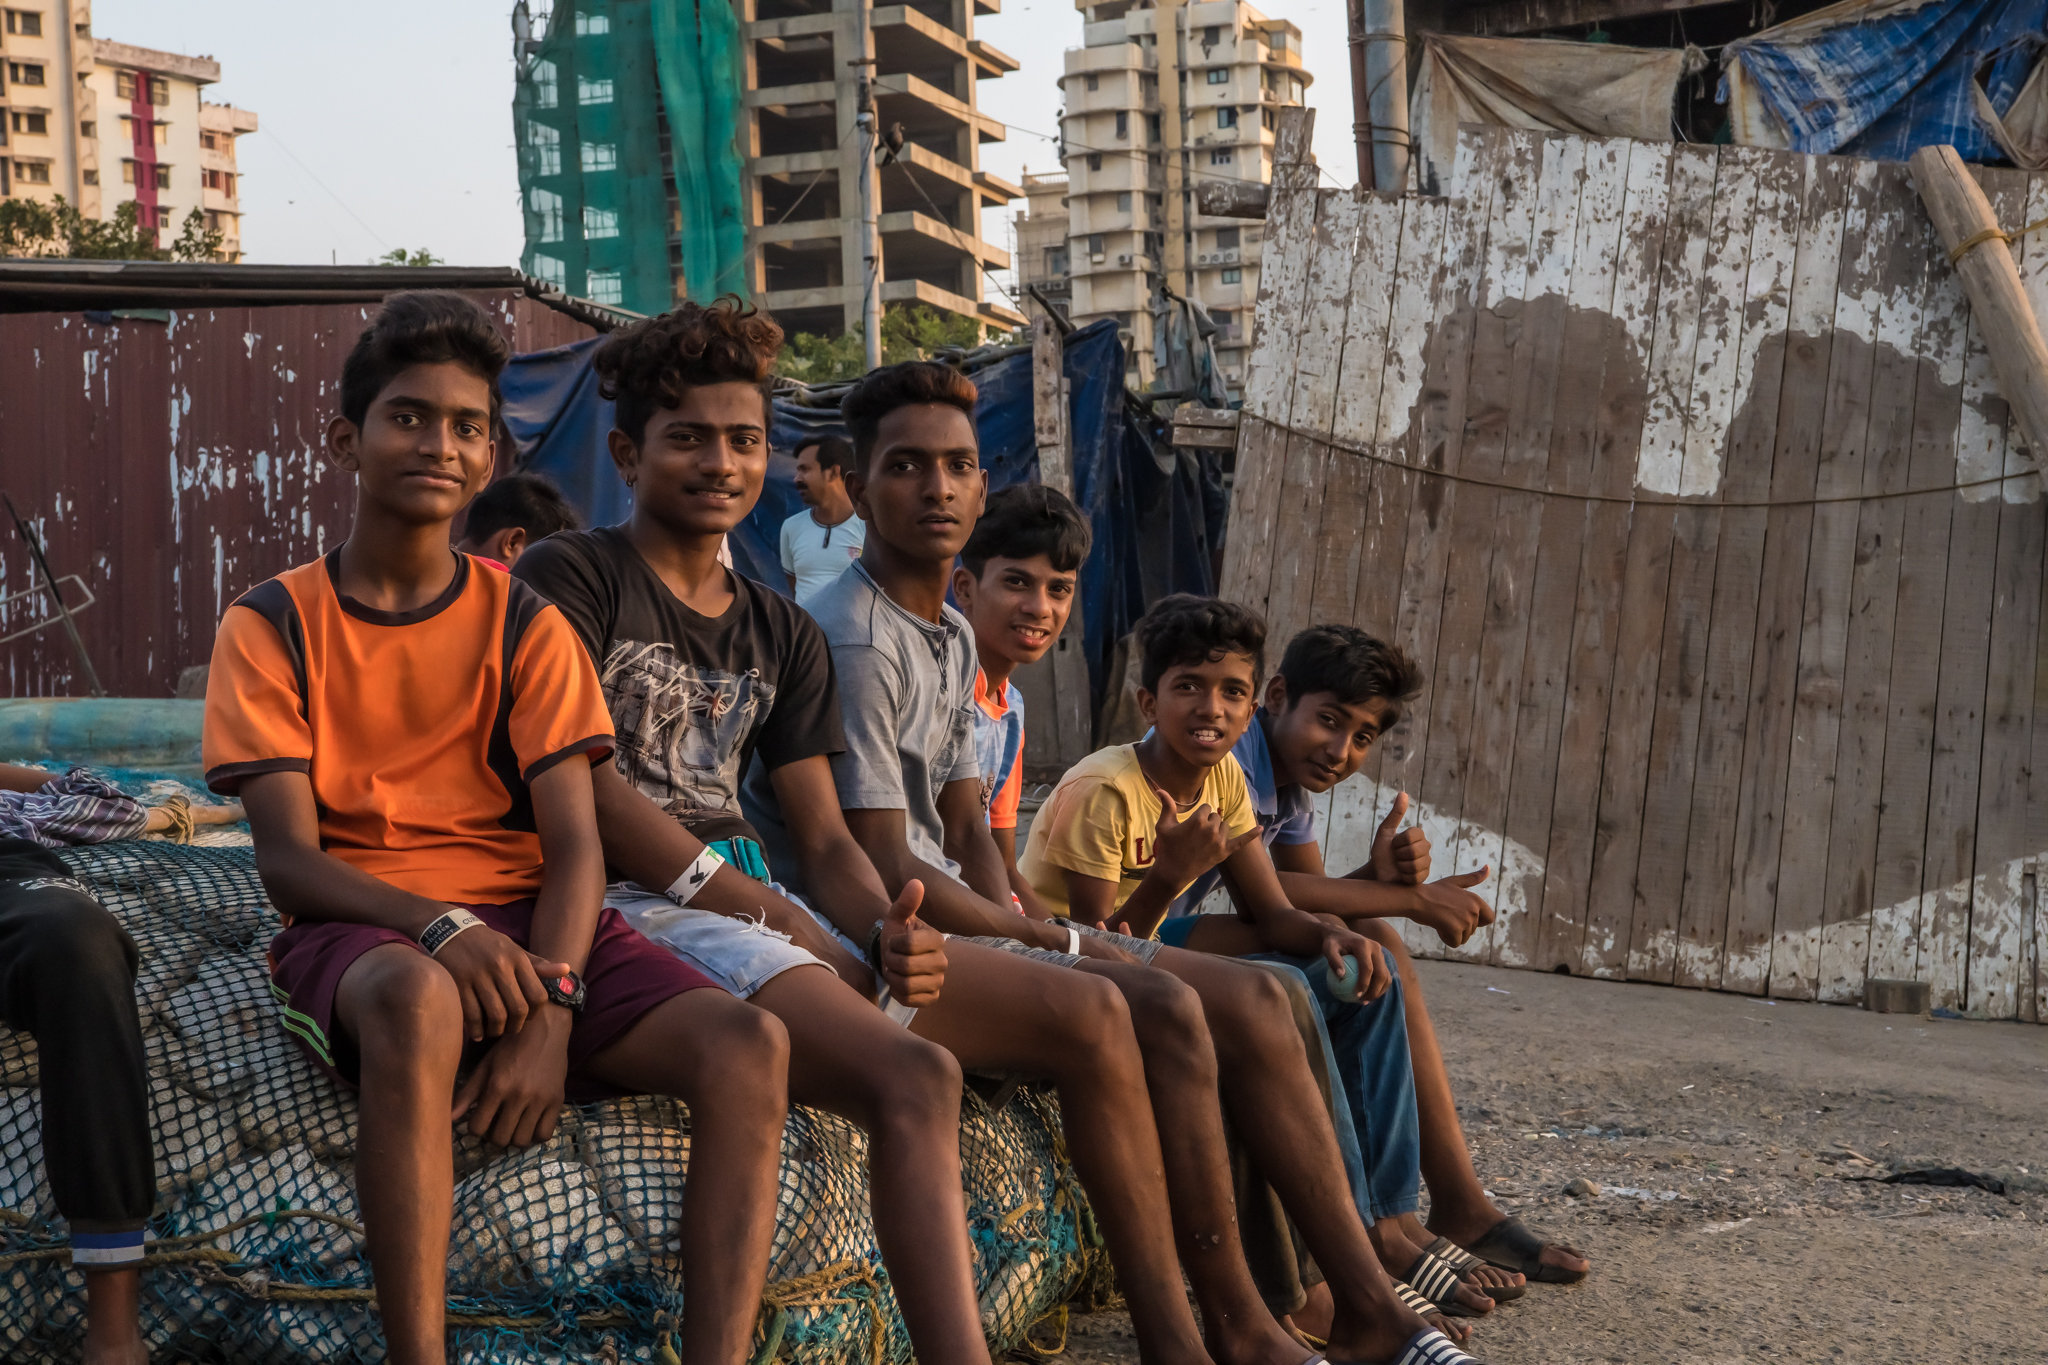 thetravelhub_india_mumbai local kids.jpg